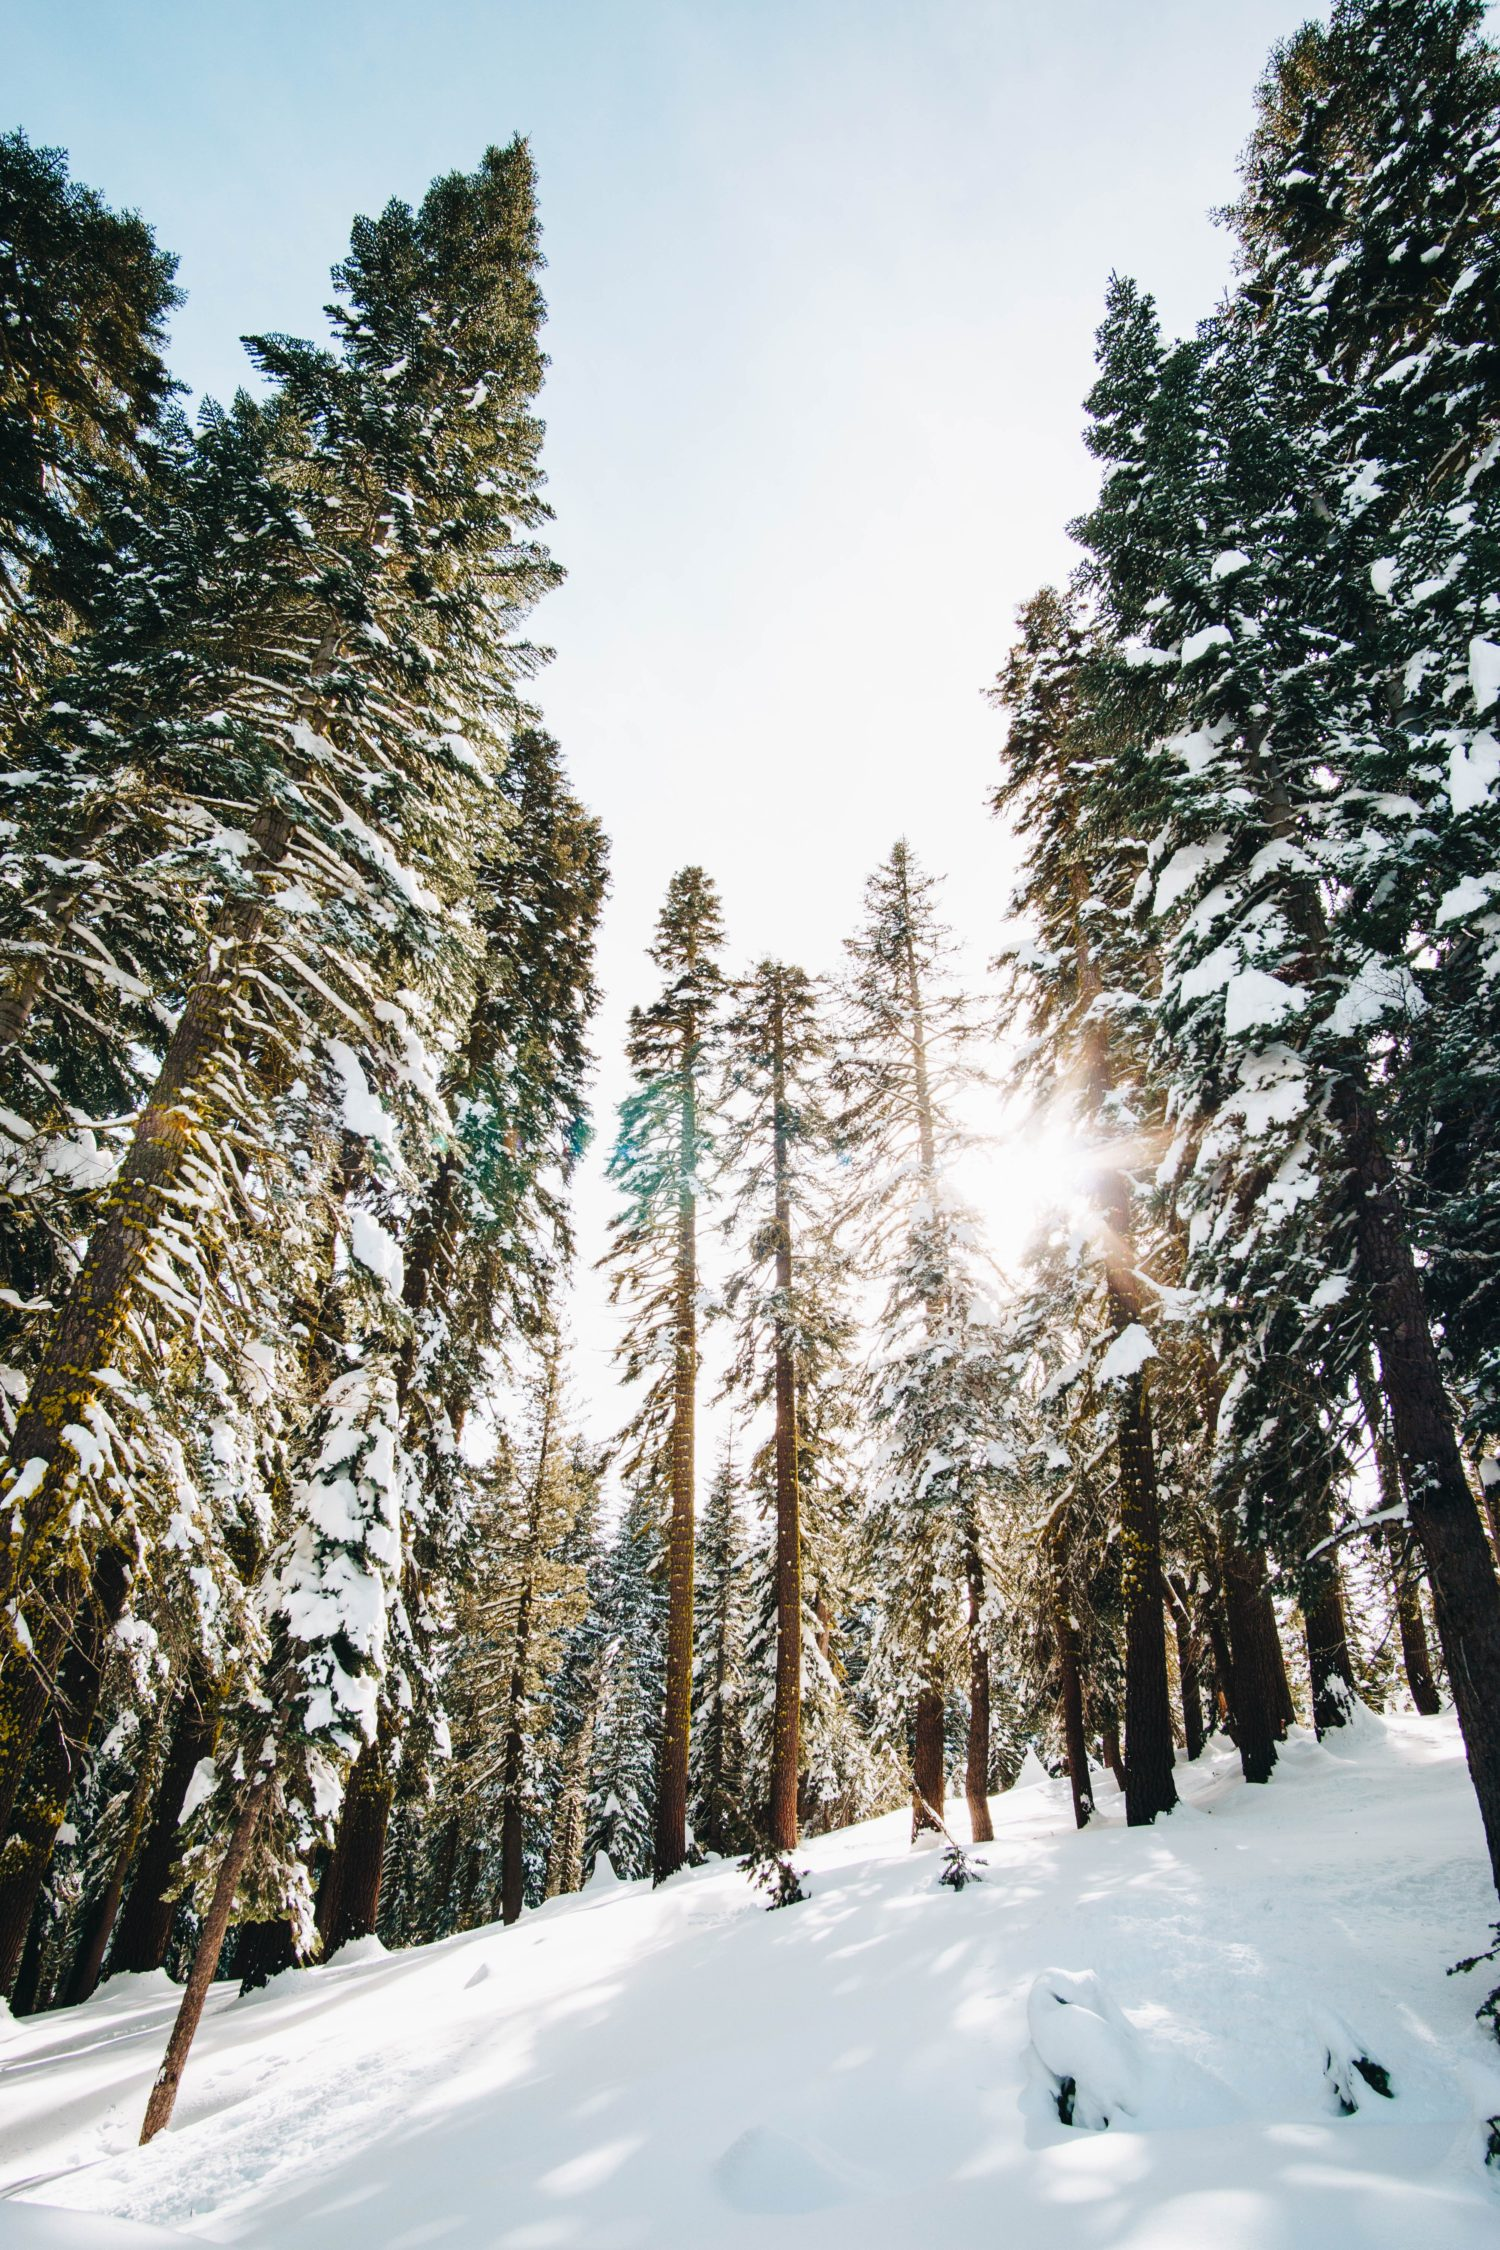 Snow-Shoeing Out of the Comfort Zone